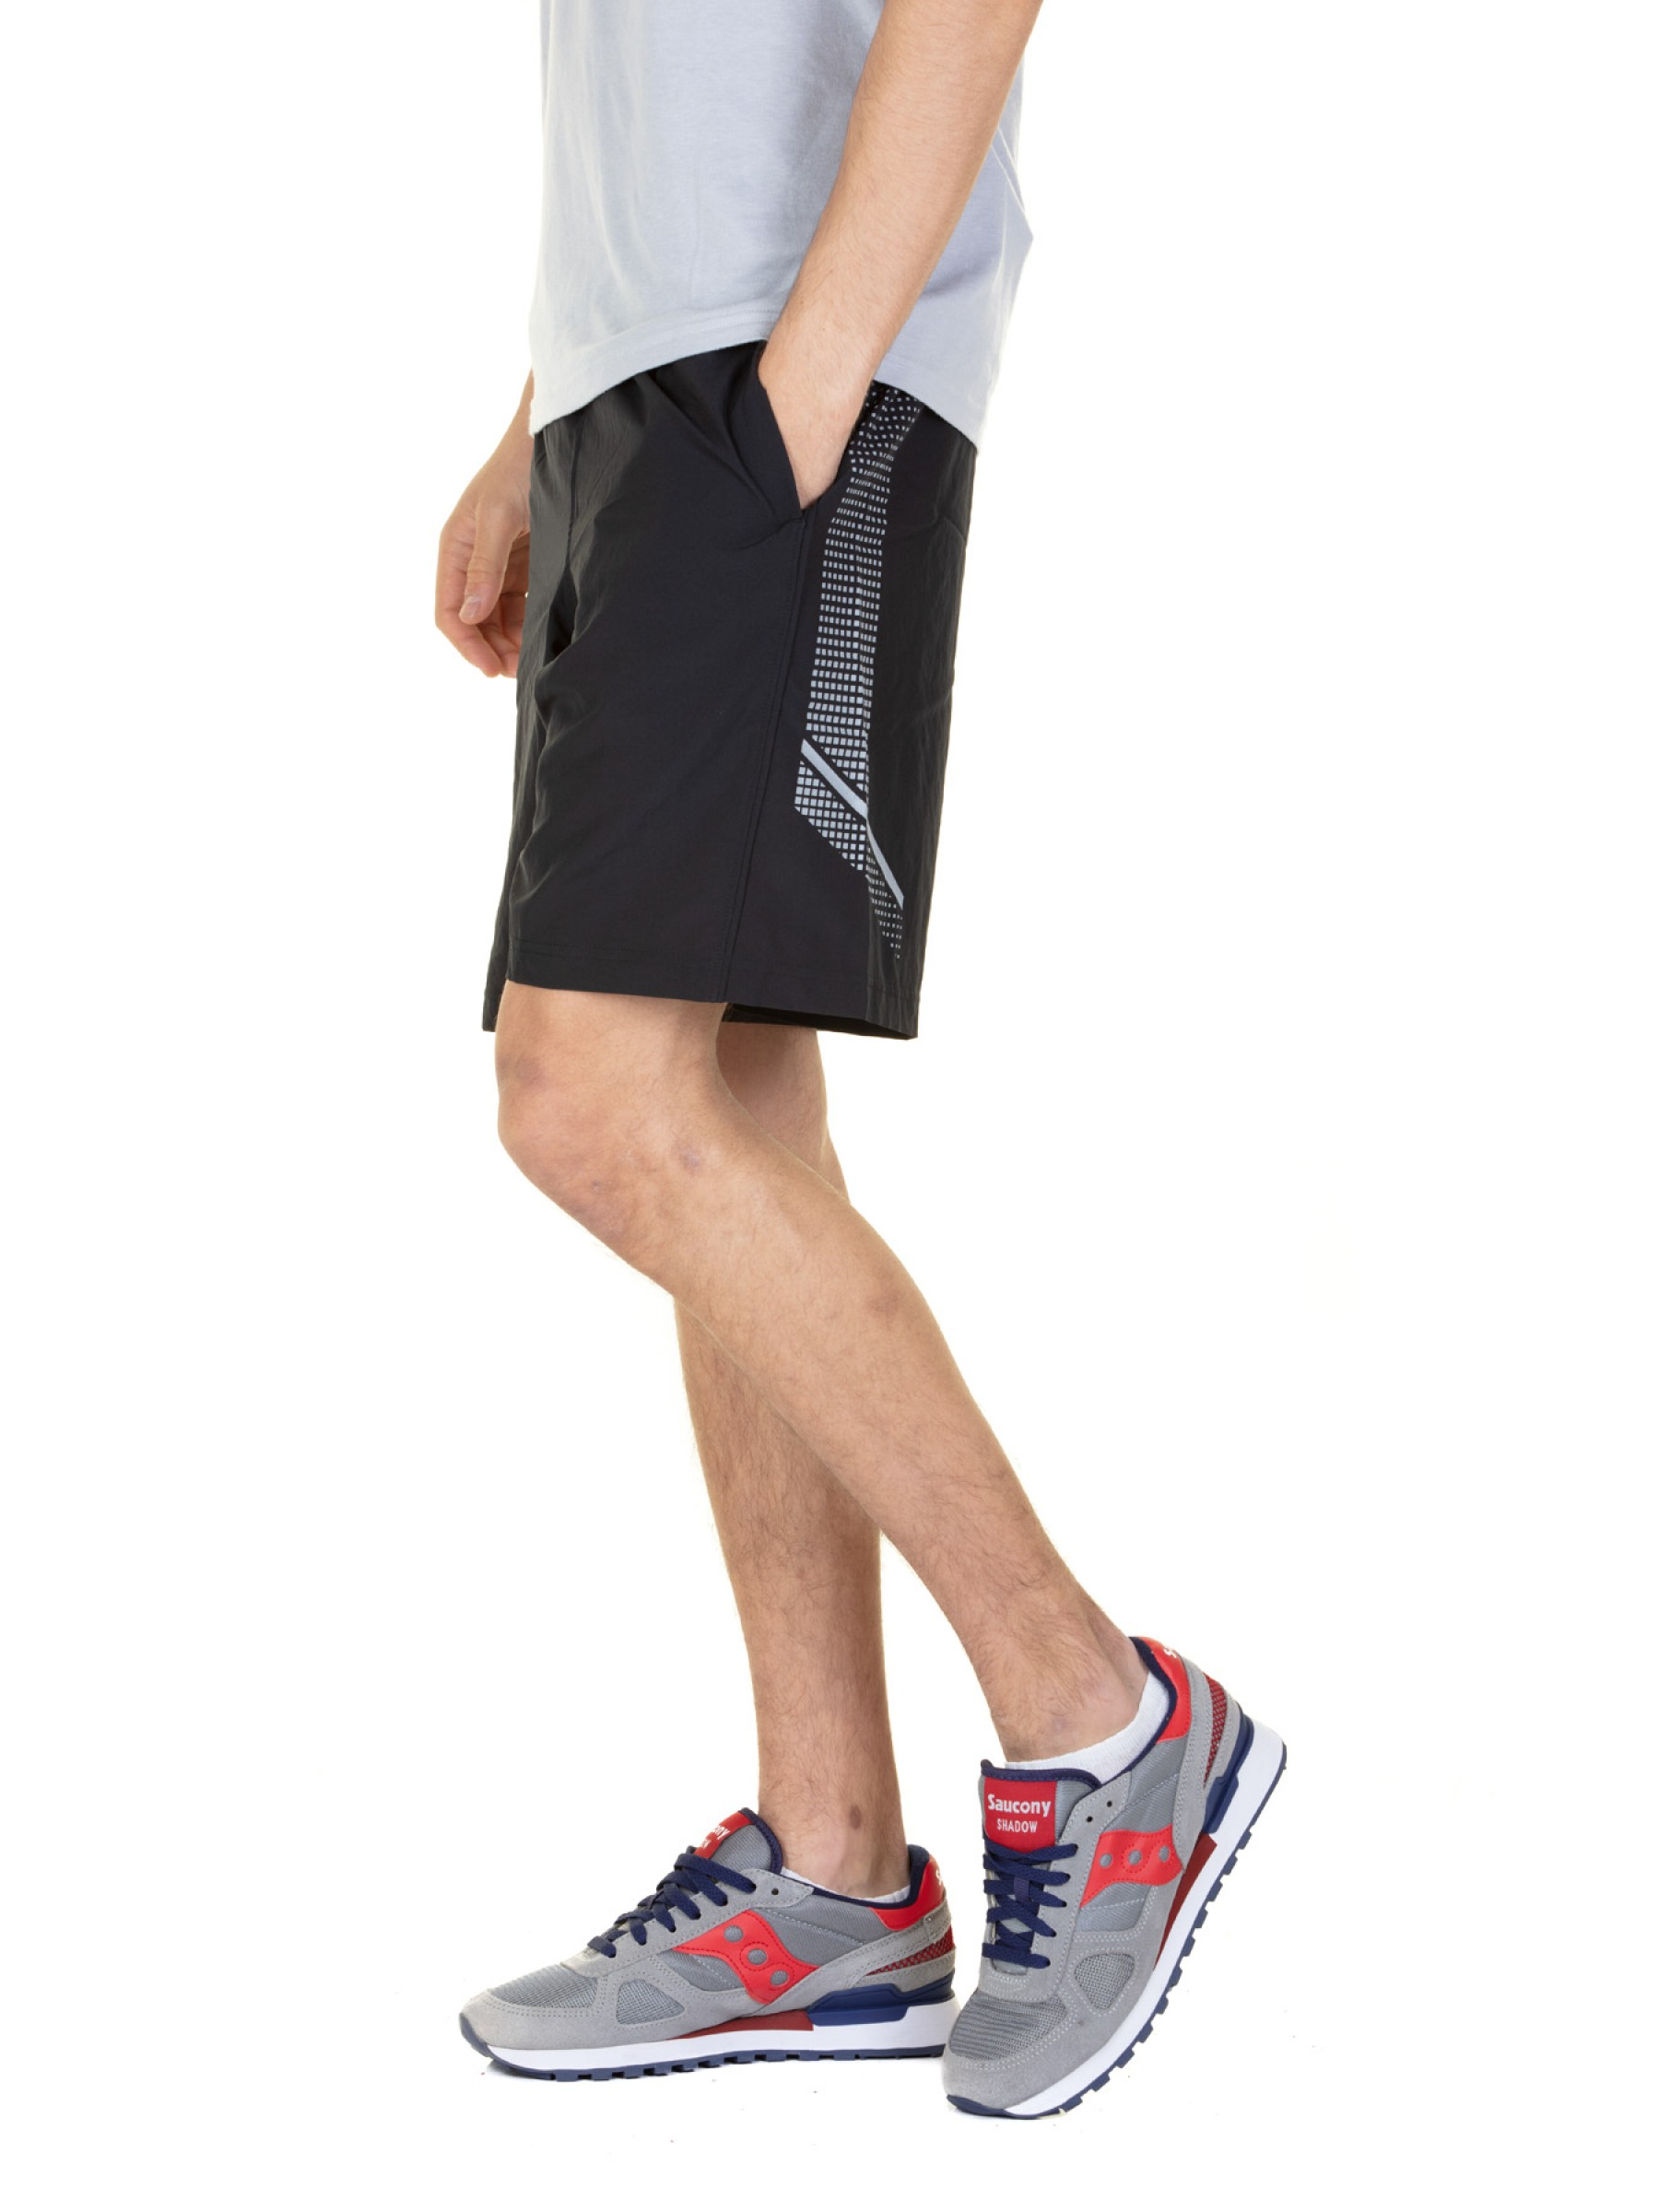 Under Armour - Woven Graphic Shorts Fitness - P21 - 1309651-003